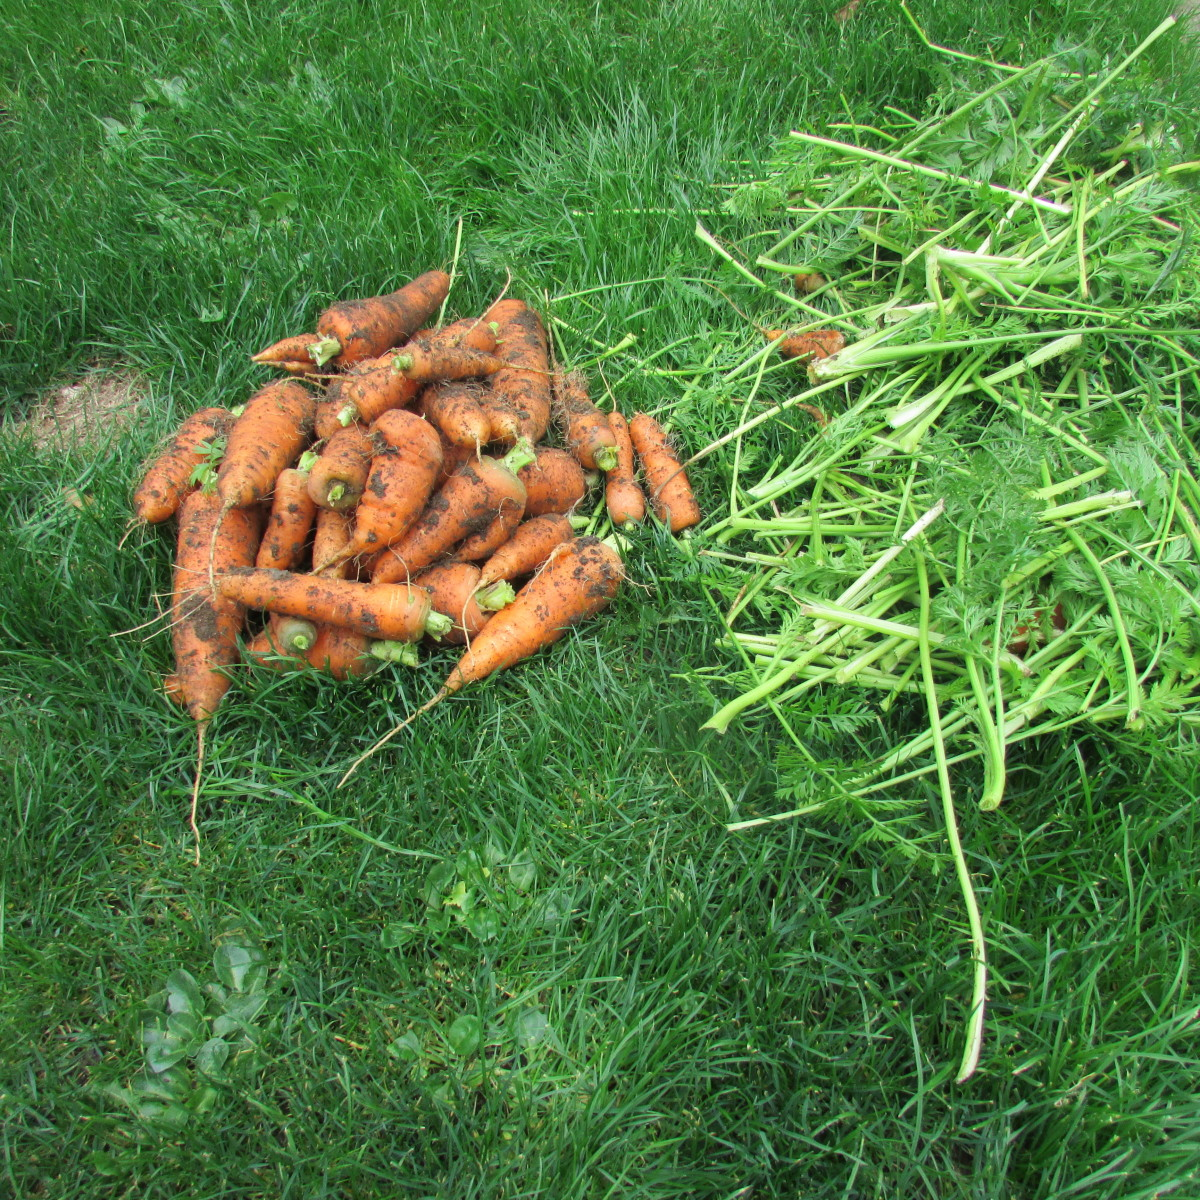 Carrots harvested from containers in my small garden.